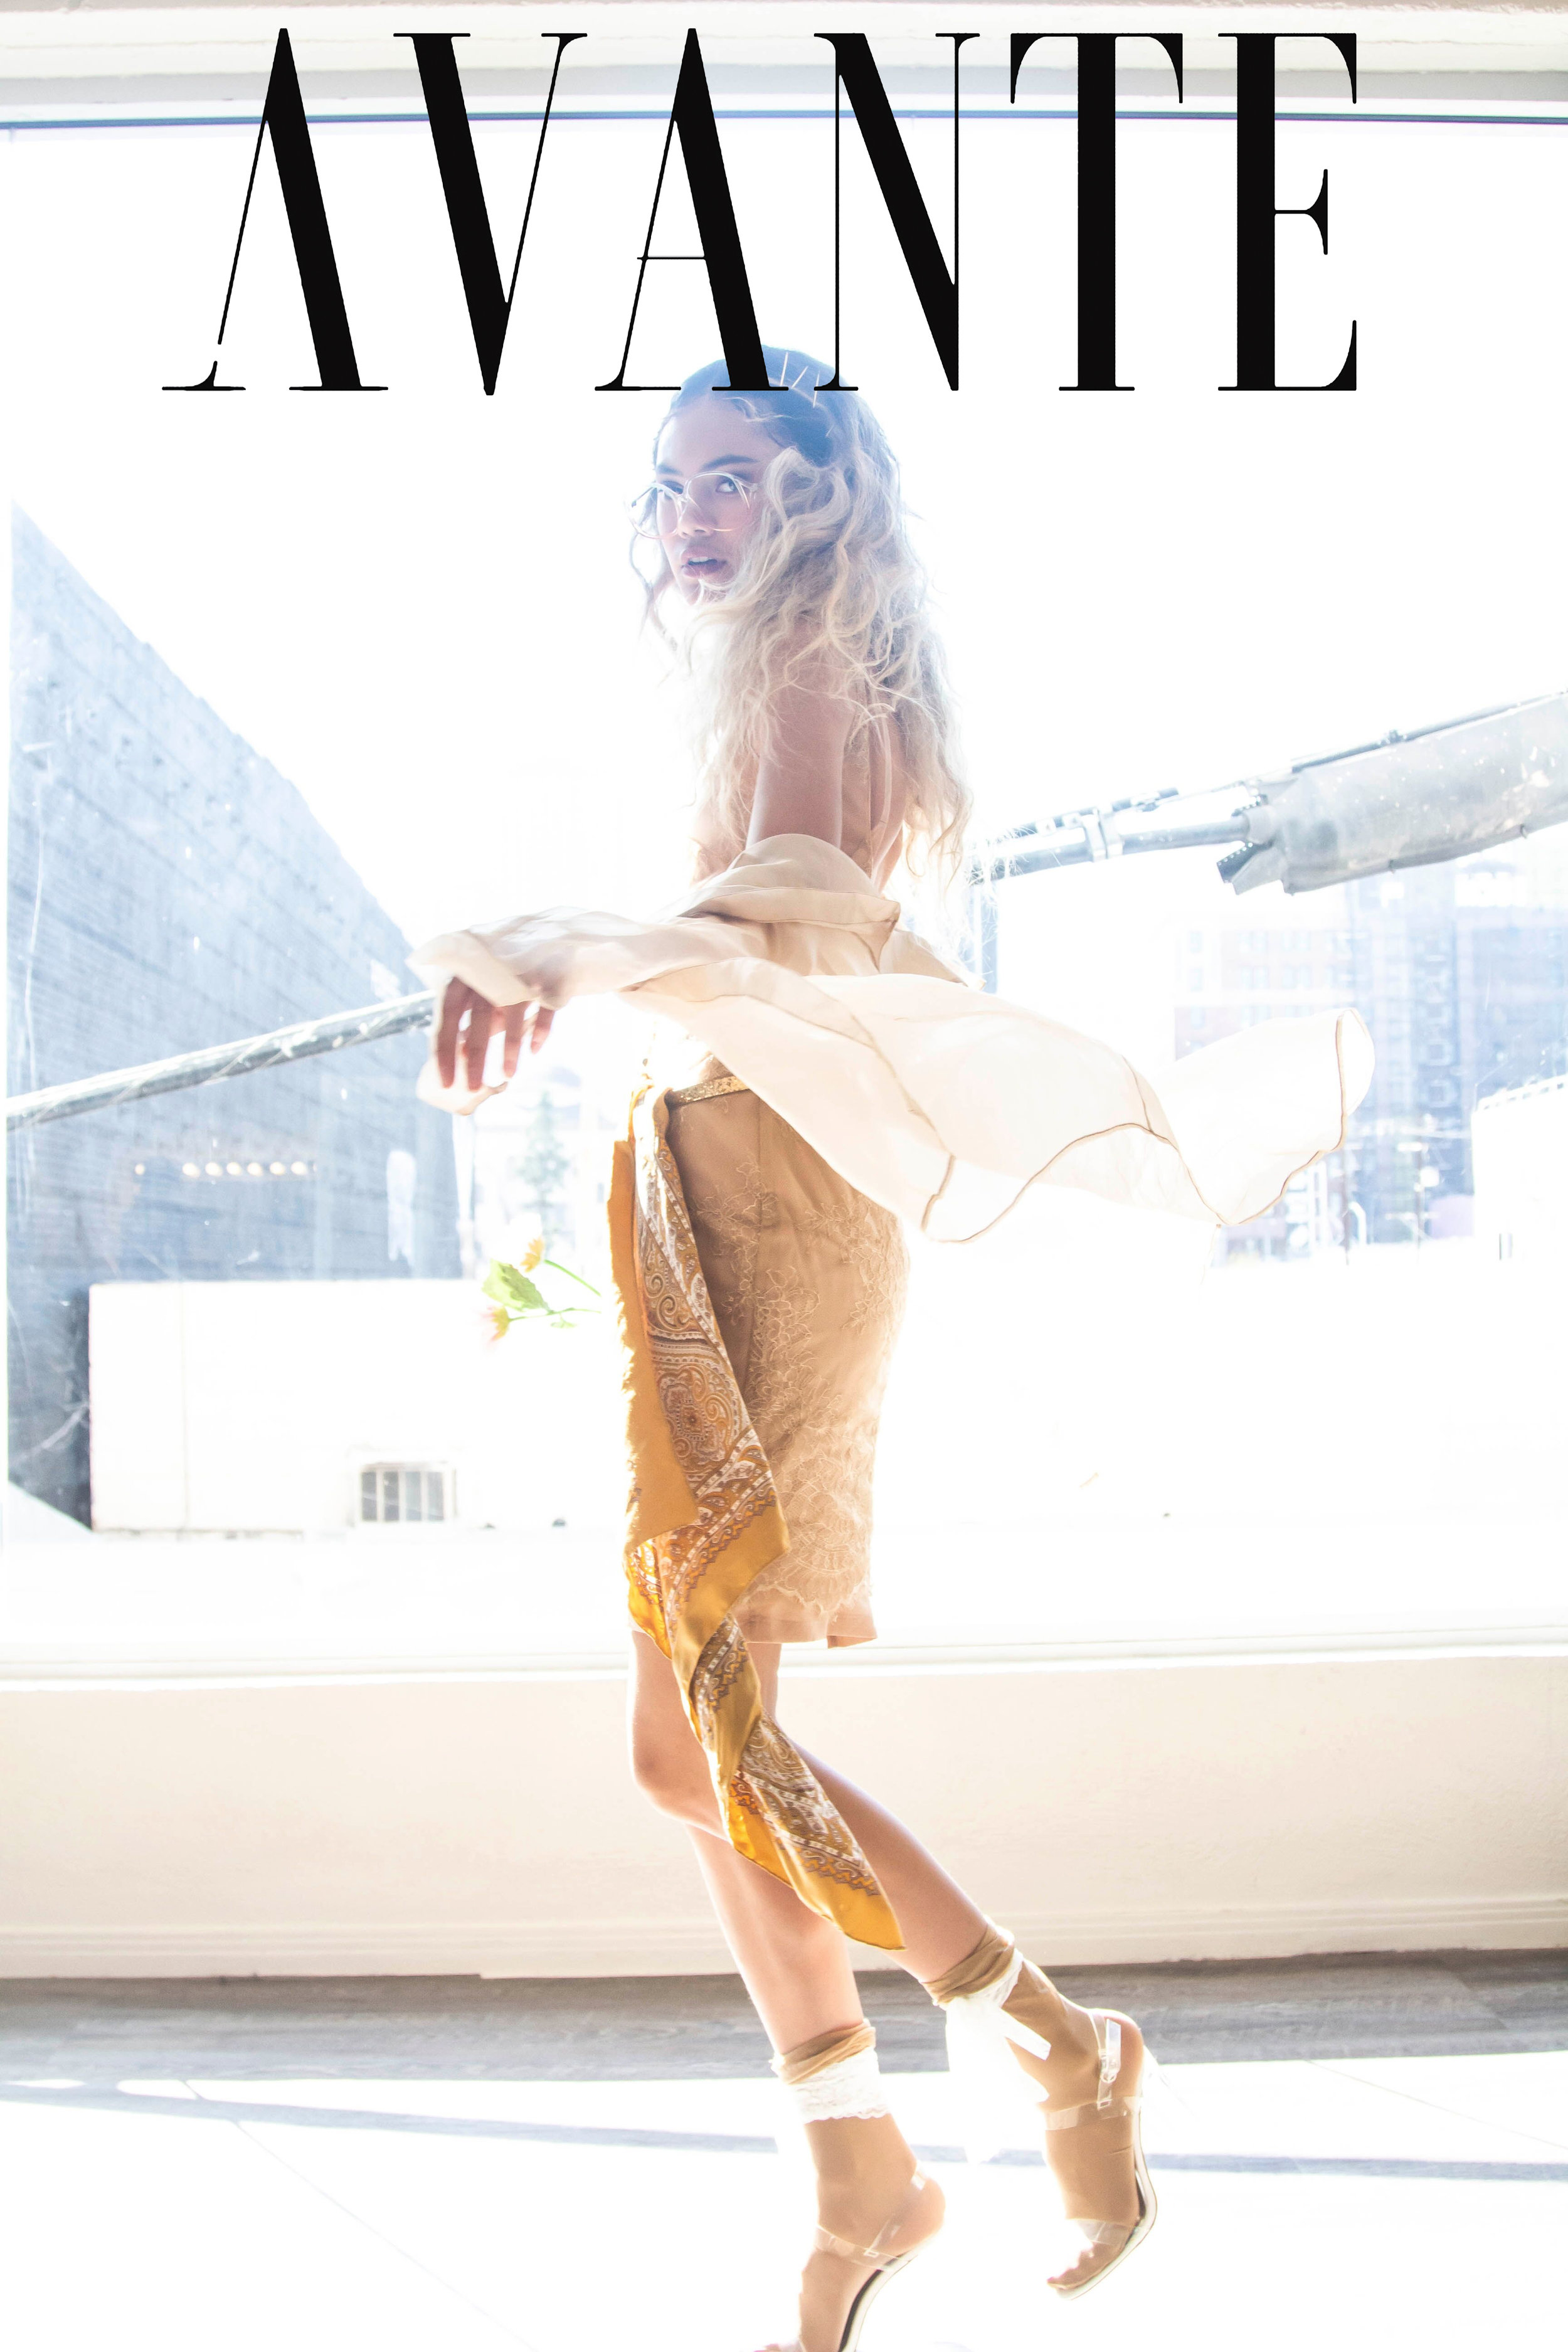 Dress: Rouba.G Blouse: MISHI New York Accessories: The Style Barre Eyewear: Quirk